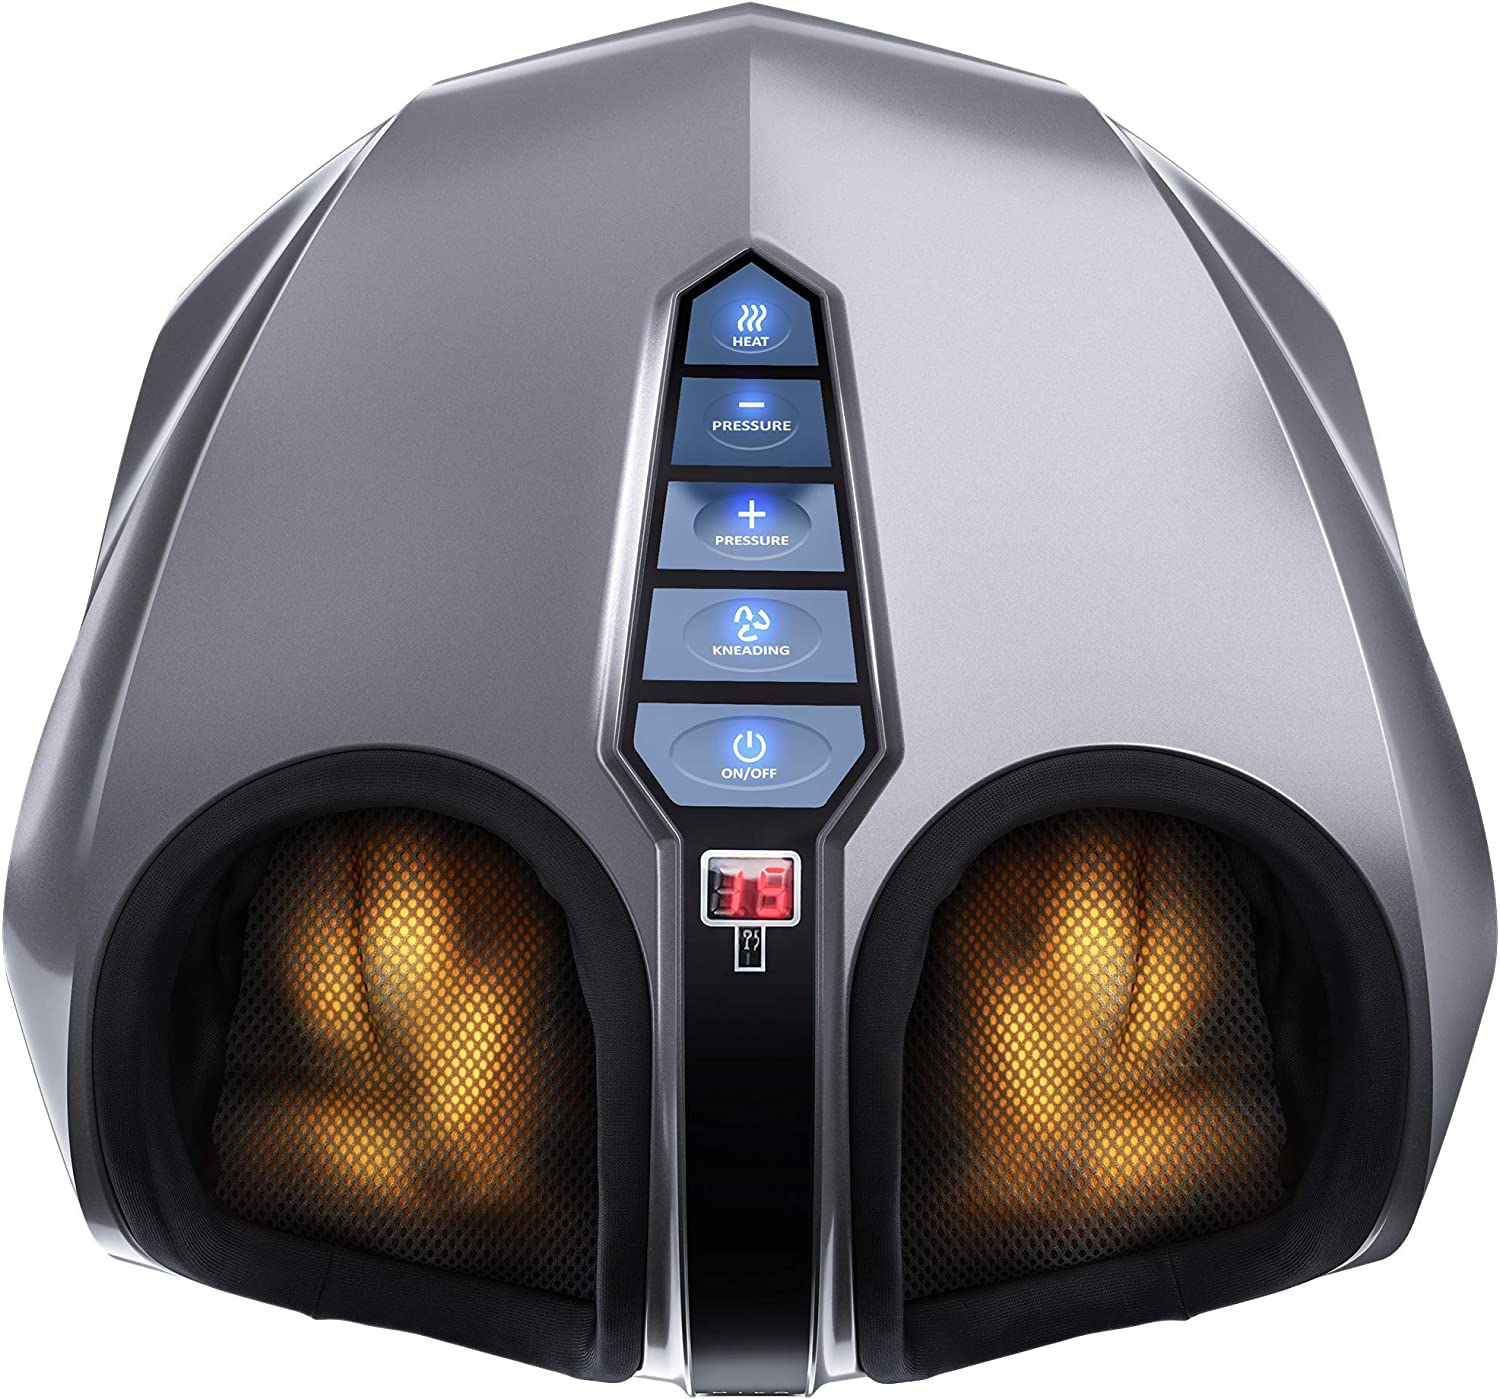 7 Best foot massager for large feet [Guide 2021] 1